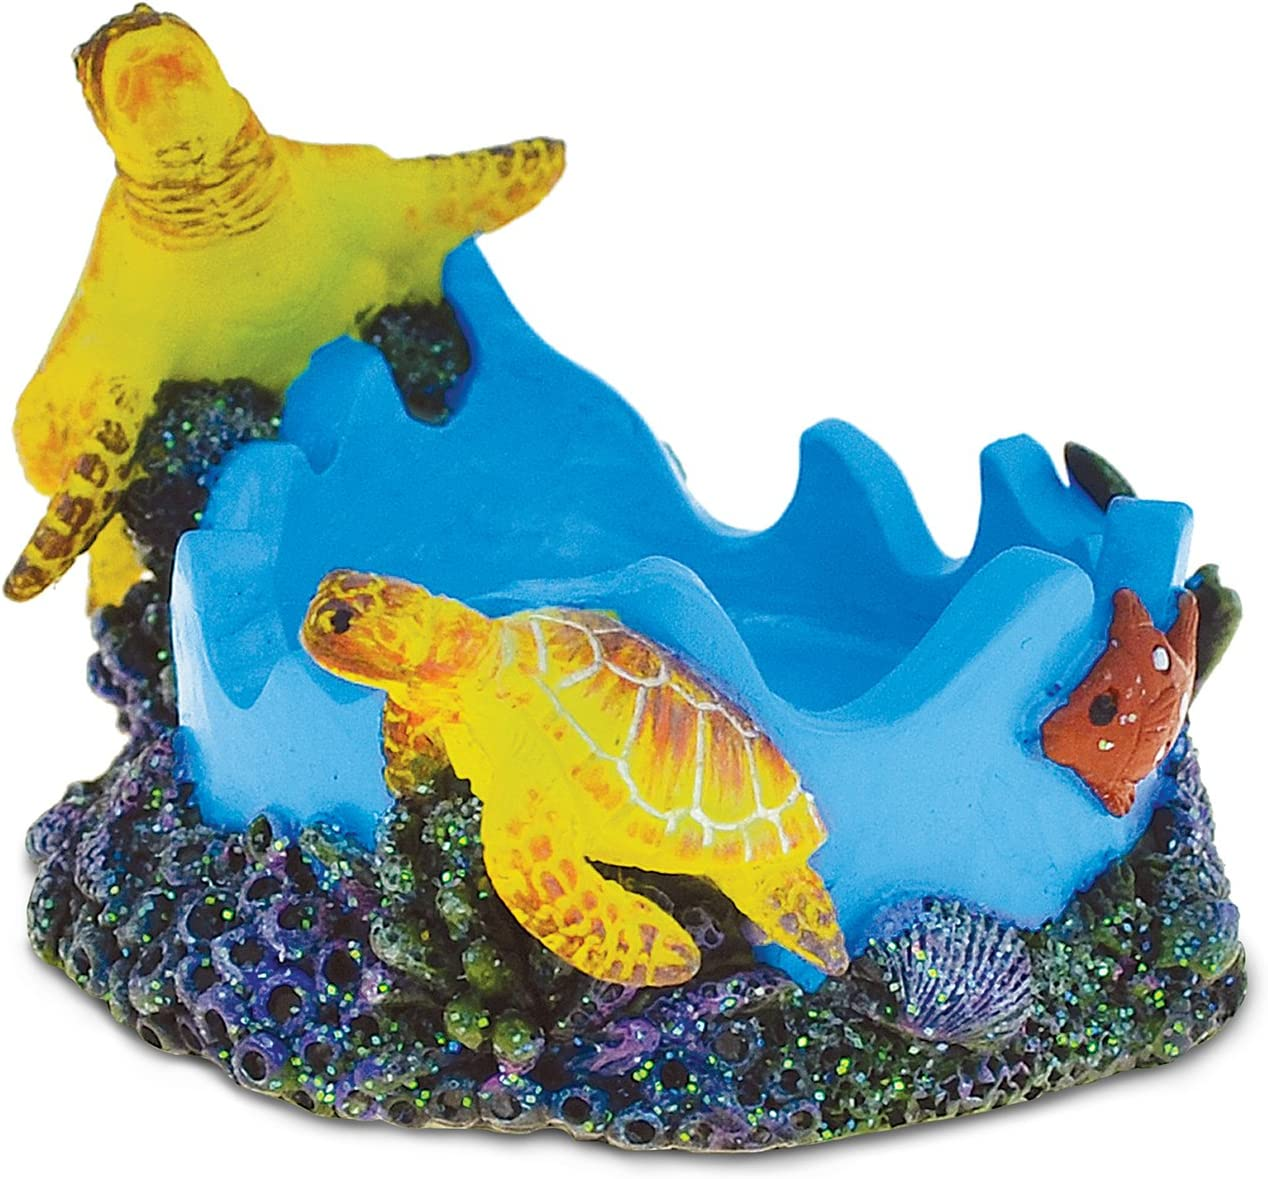 COTA Global Nautical Sea Turtles Candle Holder Sculpture Intricate Art Resin Figurine Ocean & Sea Life Theme Décor Handcrafted Hand Painted Collectible Figure Home Accent Unique Gift Souvenir